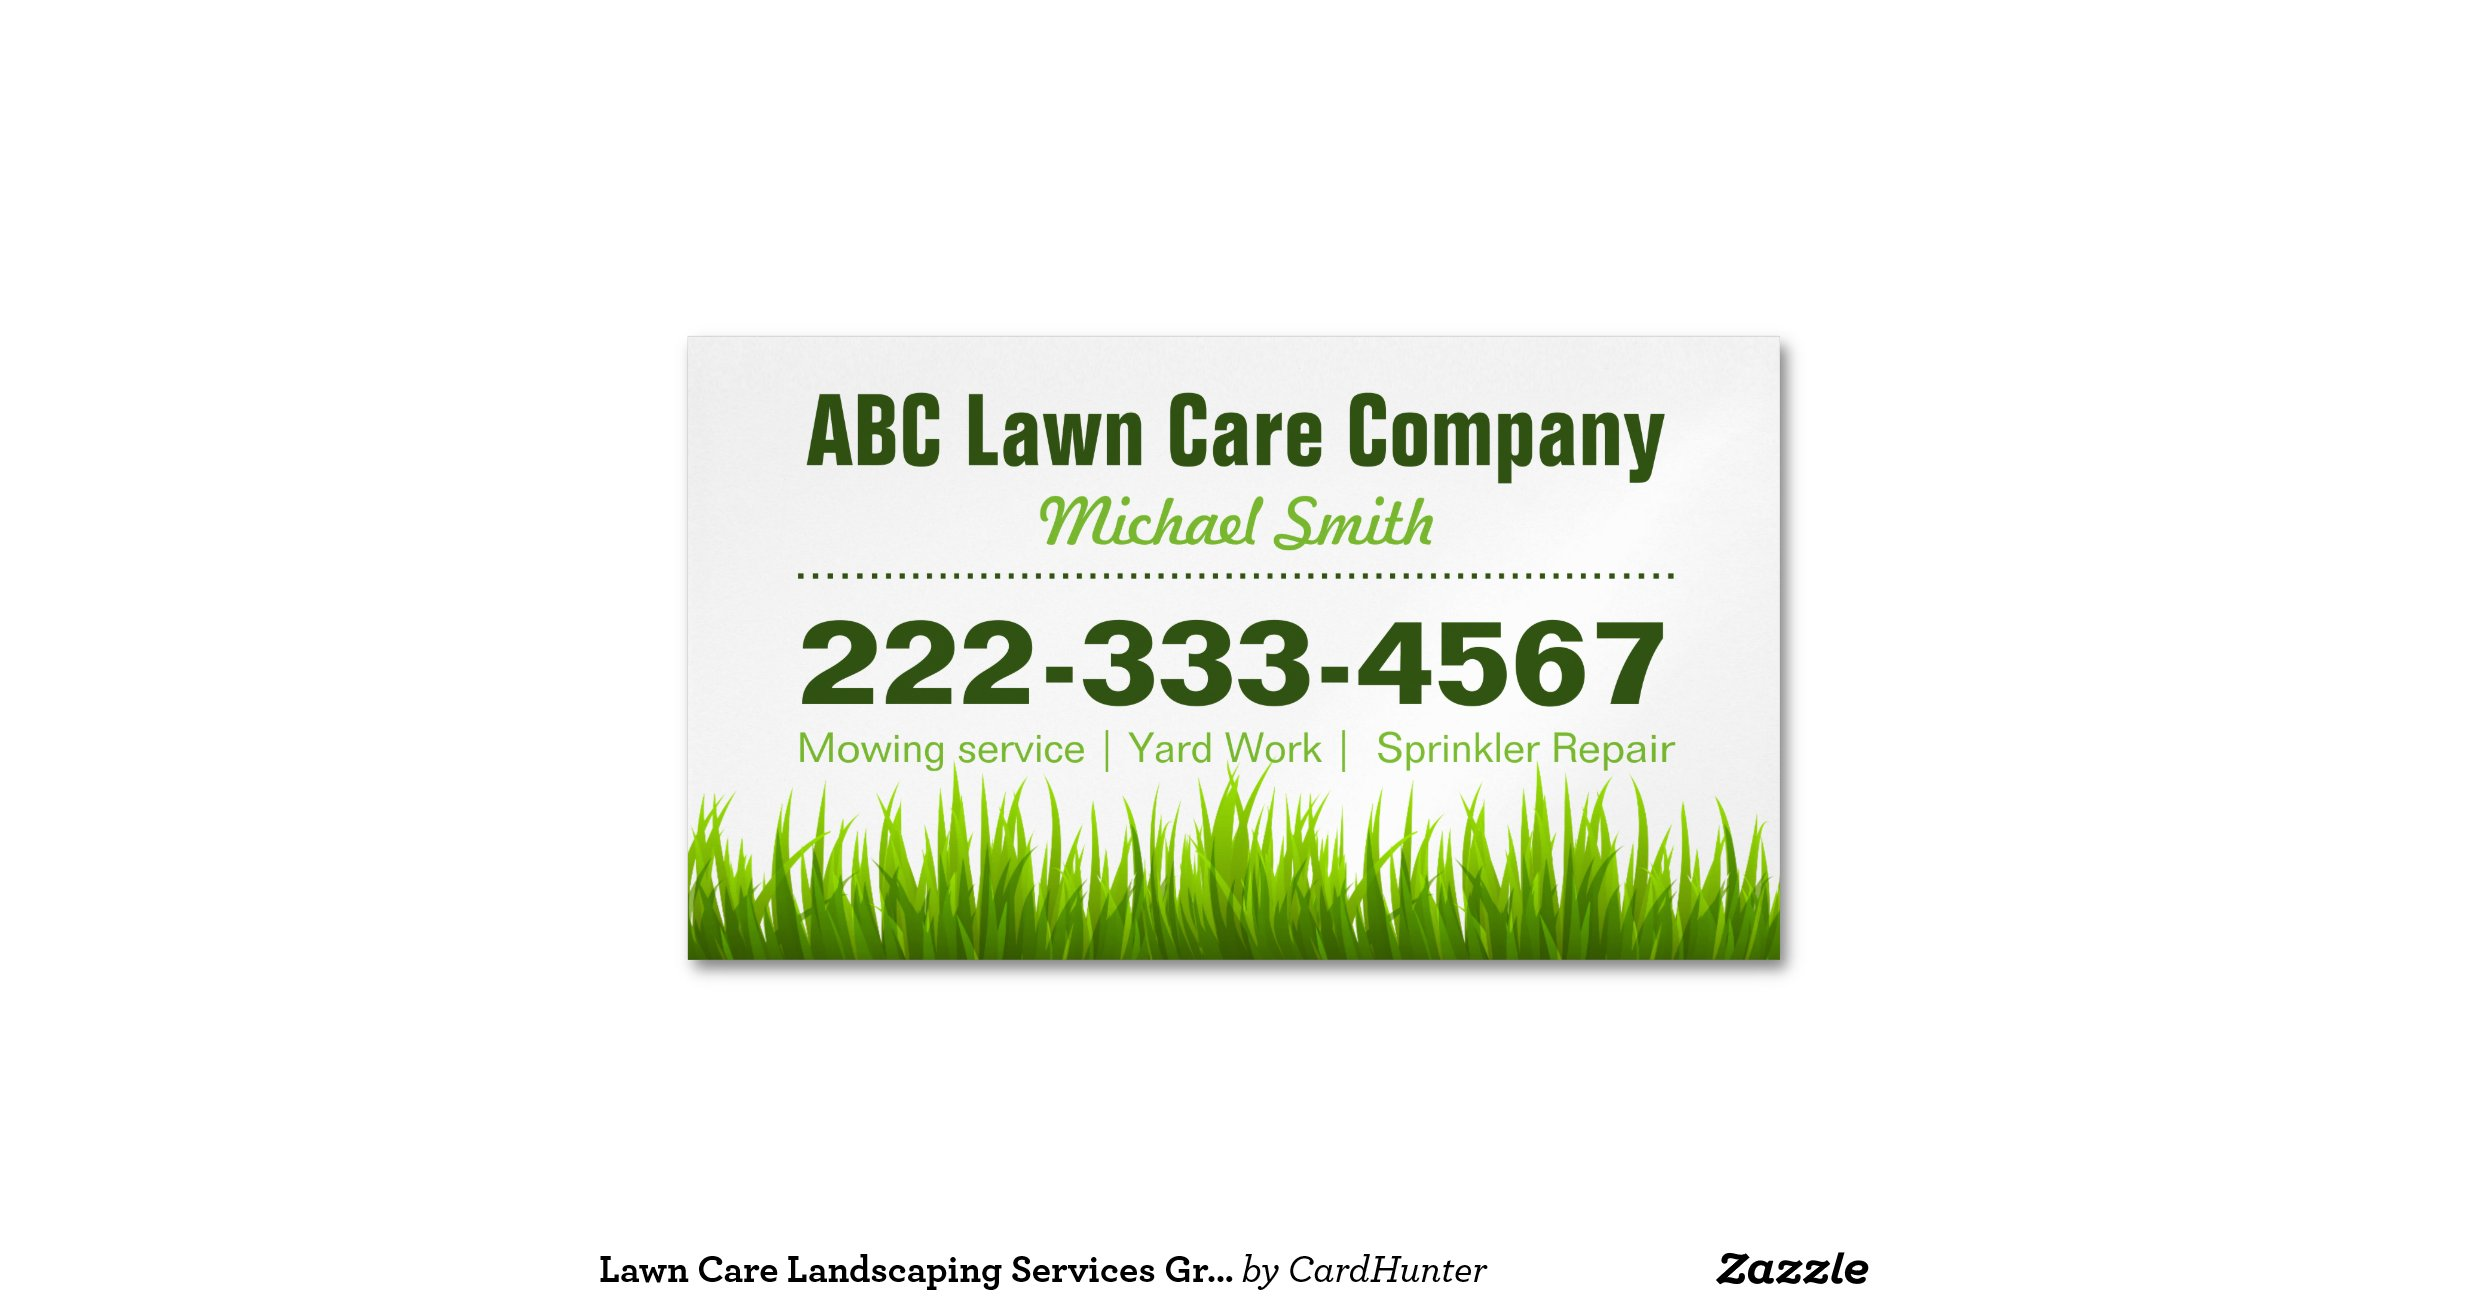 Green Grass Lawn Care Nebraska : Lawn care landscaping services green grass style magnetic business